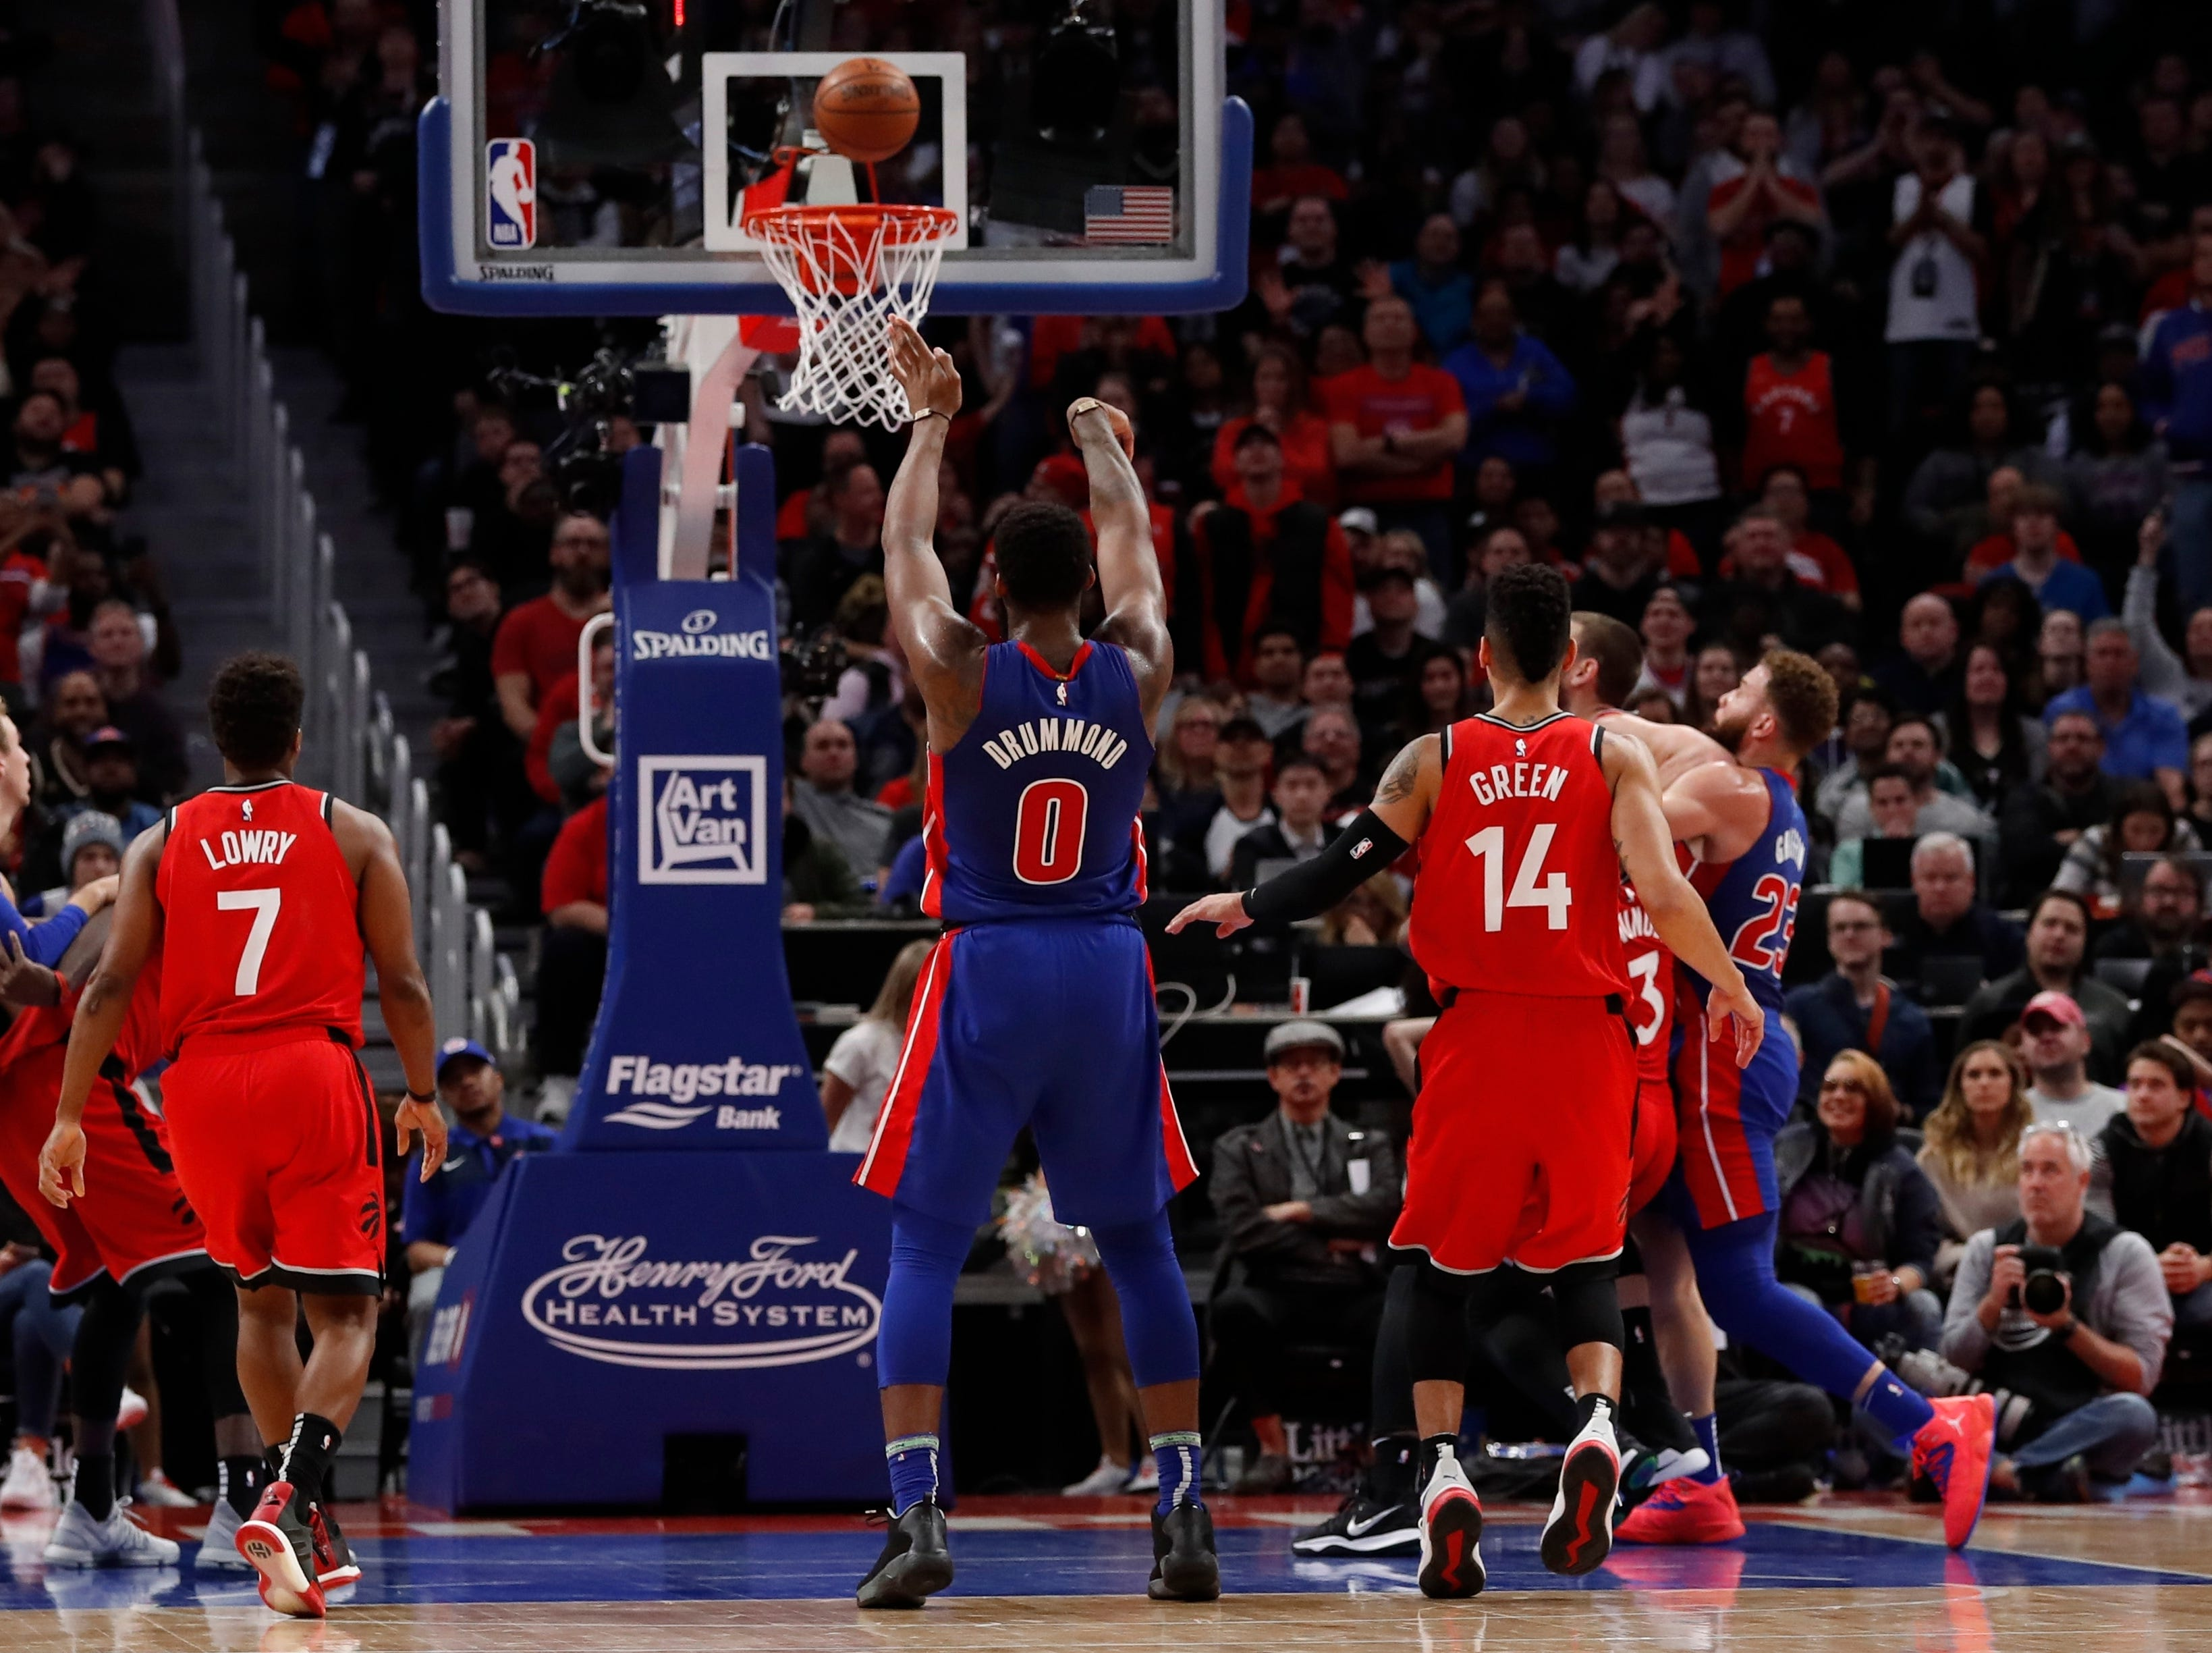 Detroit Pistons center Andre Drummond (0) shoots a free throw during the second half.